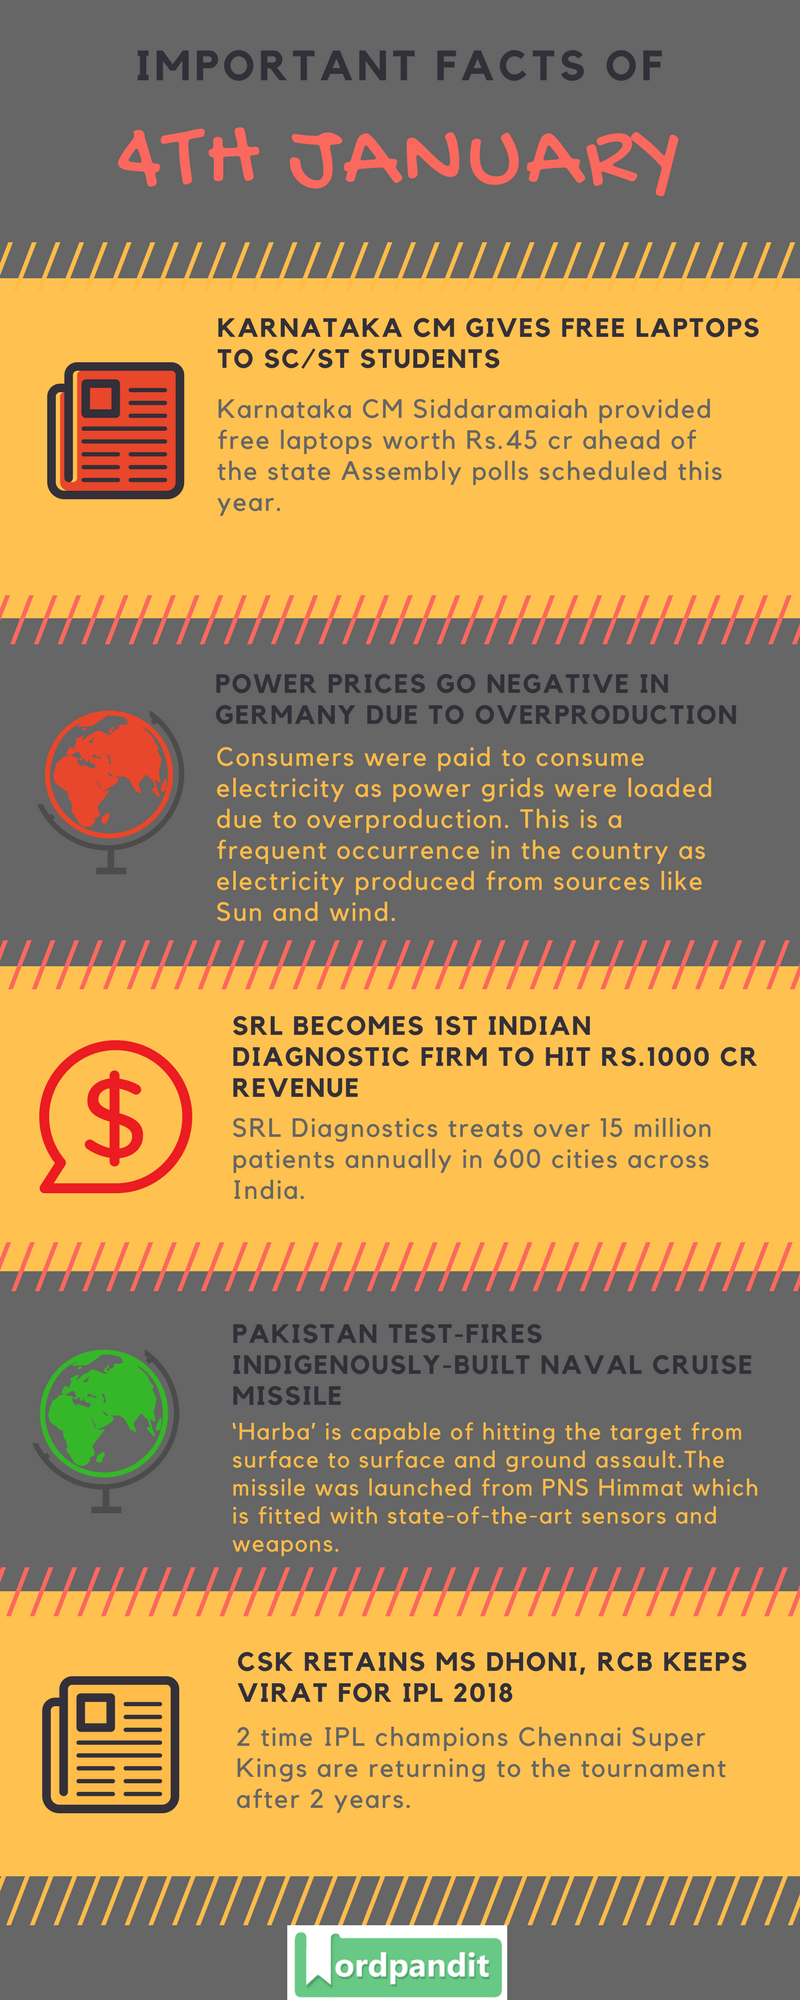 Daily Current Affairs 4 january 2018 Current Affairs Quiz january 4 2018 Current Affairs Infographic